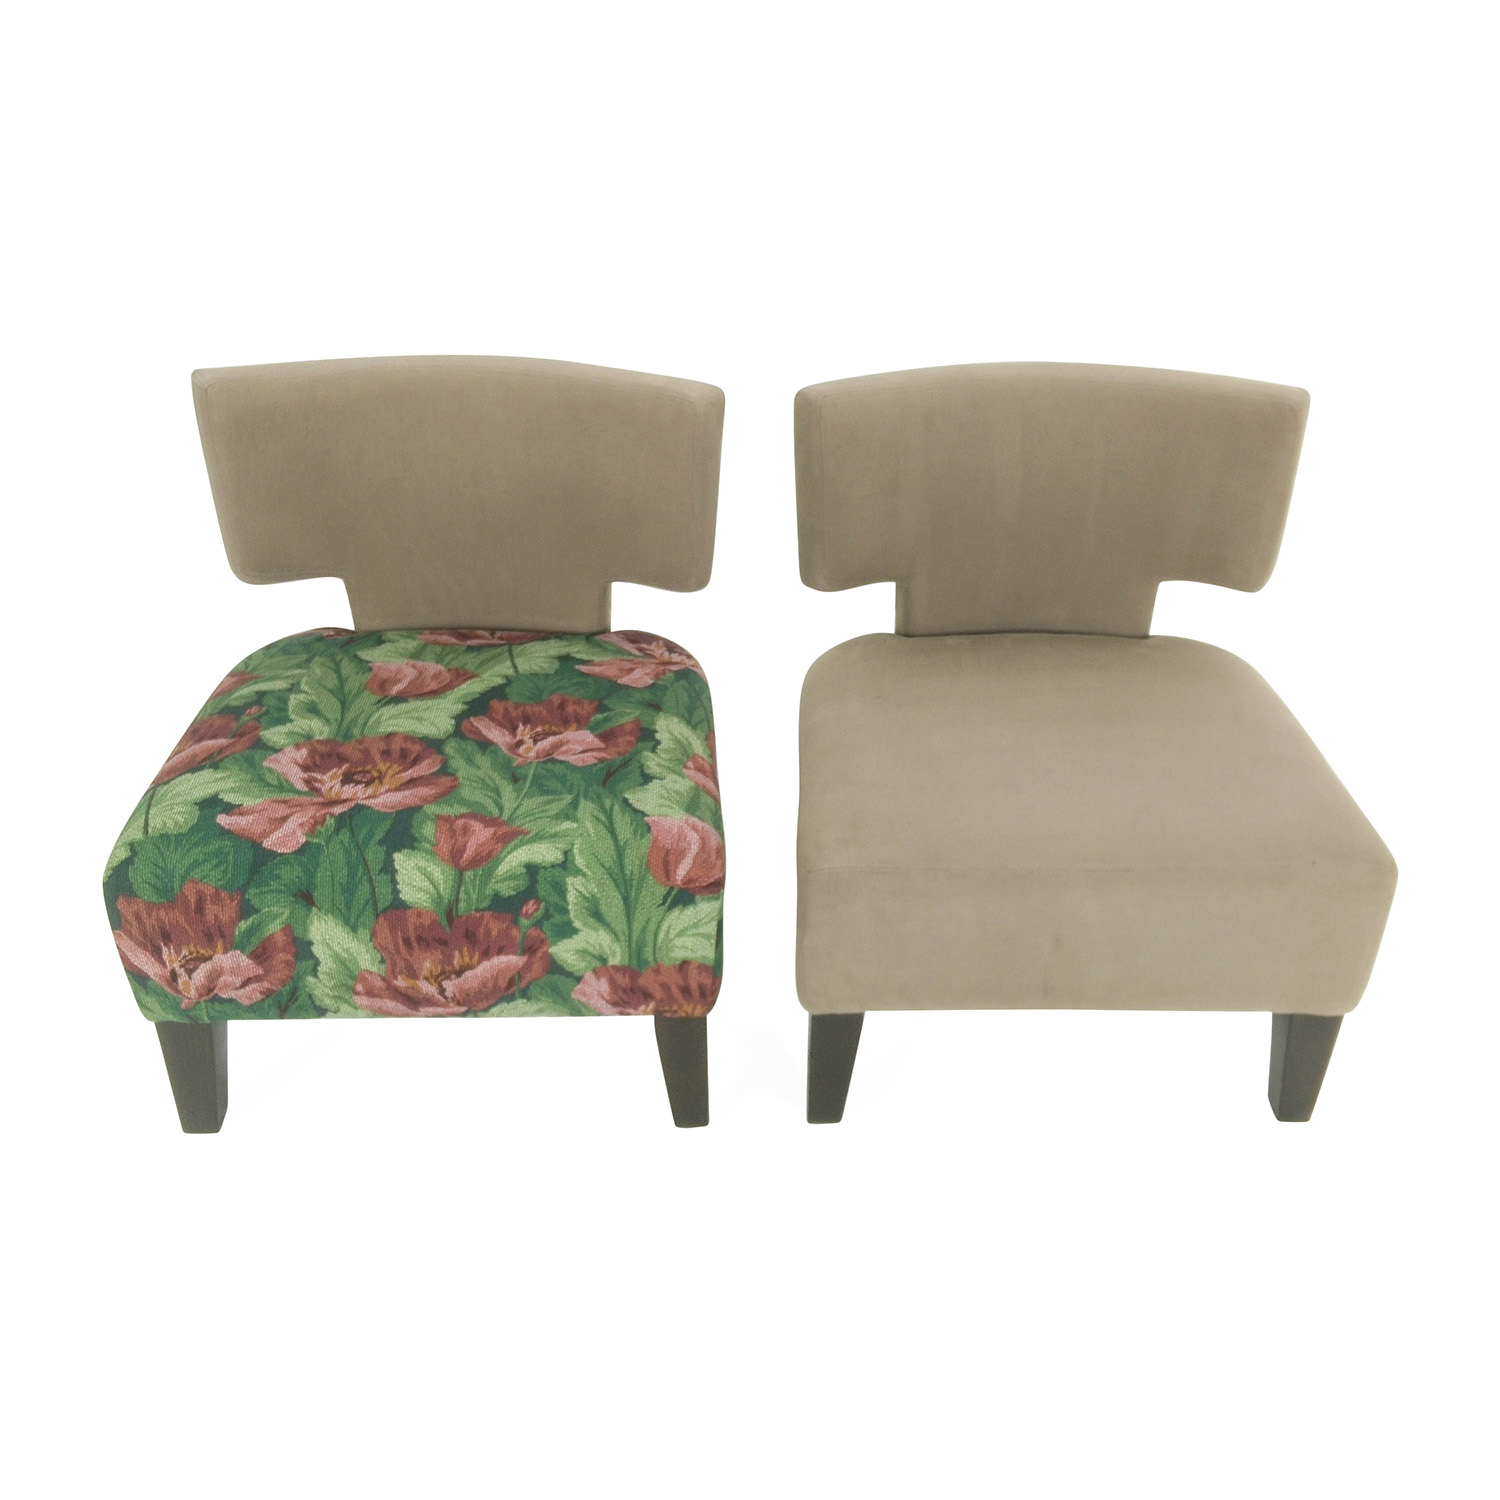 Custom Custom Chair Set for sale